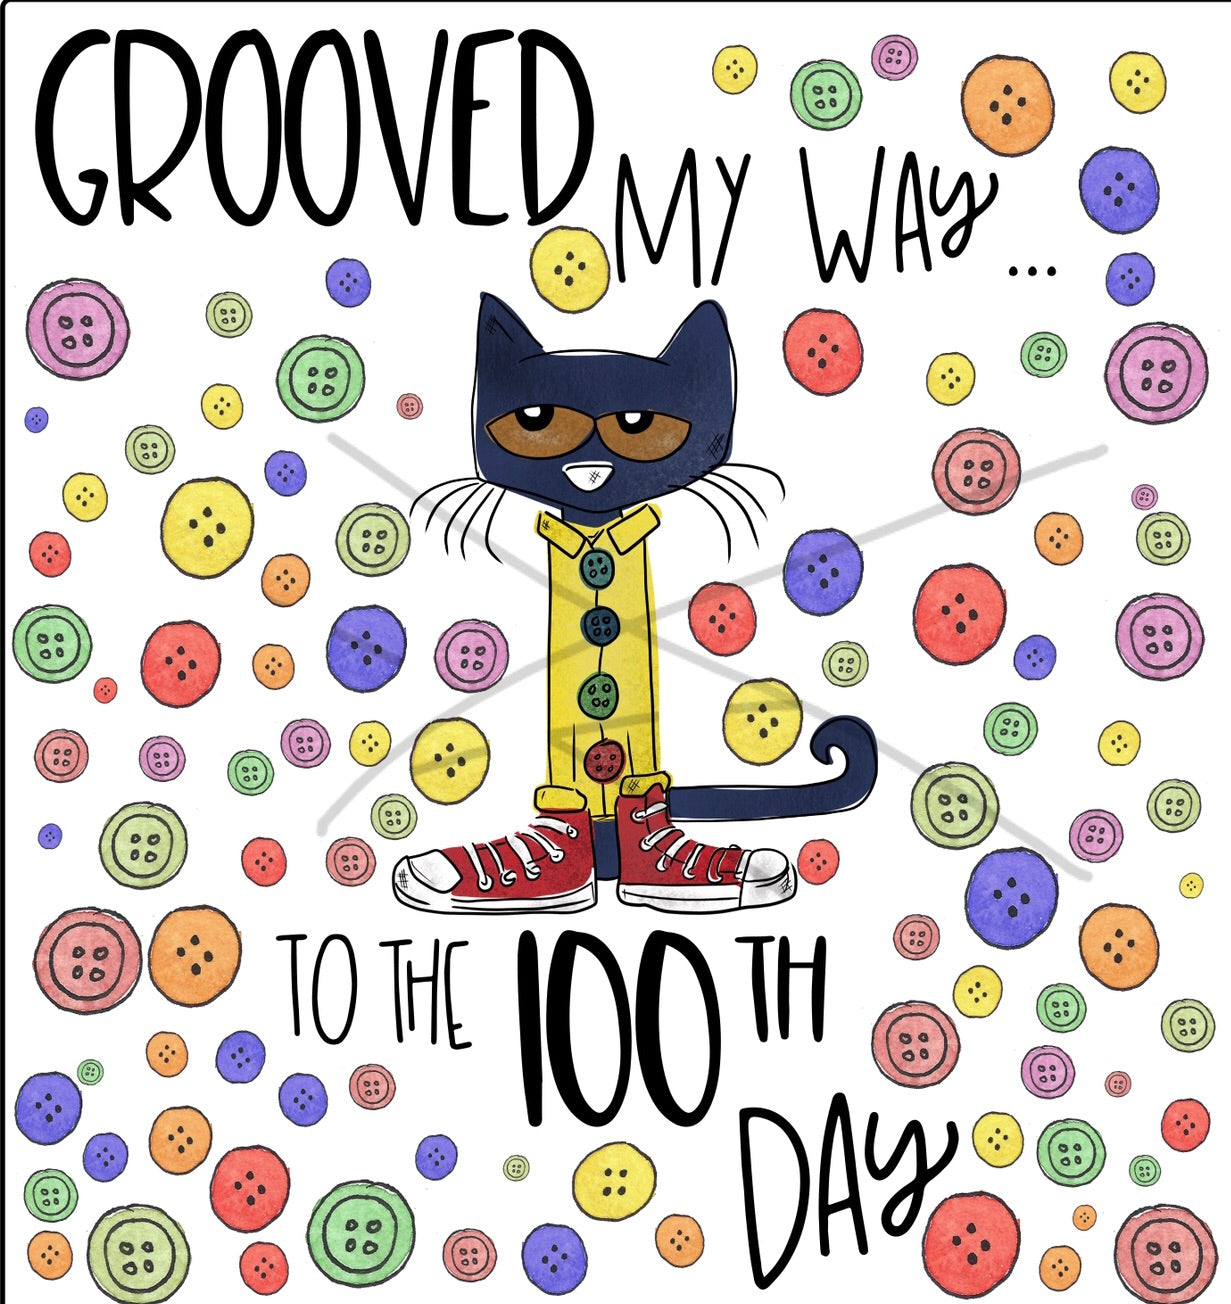 Grooved my way to the 100th day - Sublimation Transfer